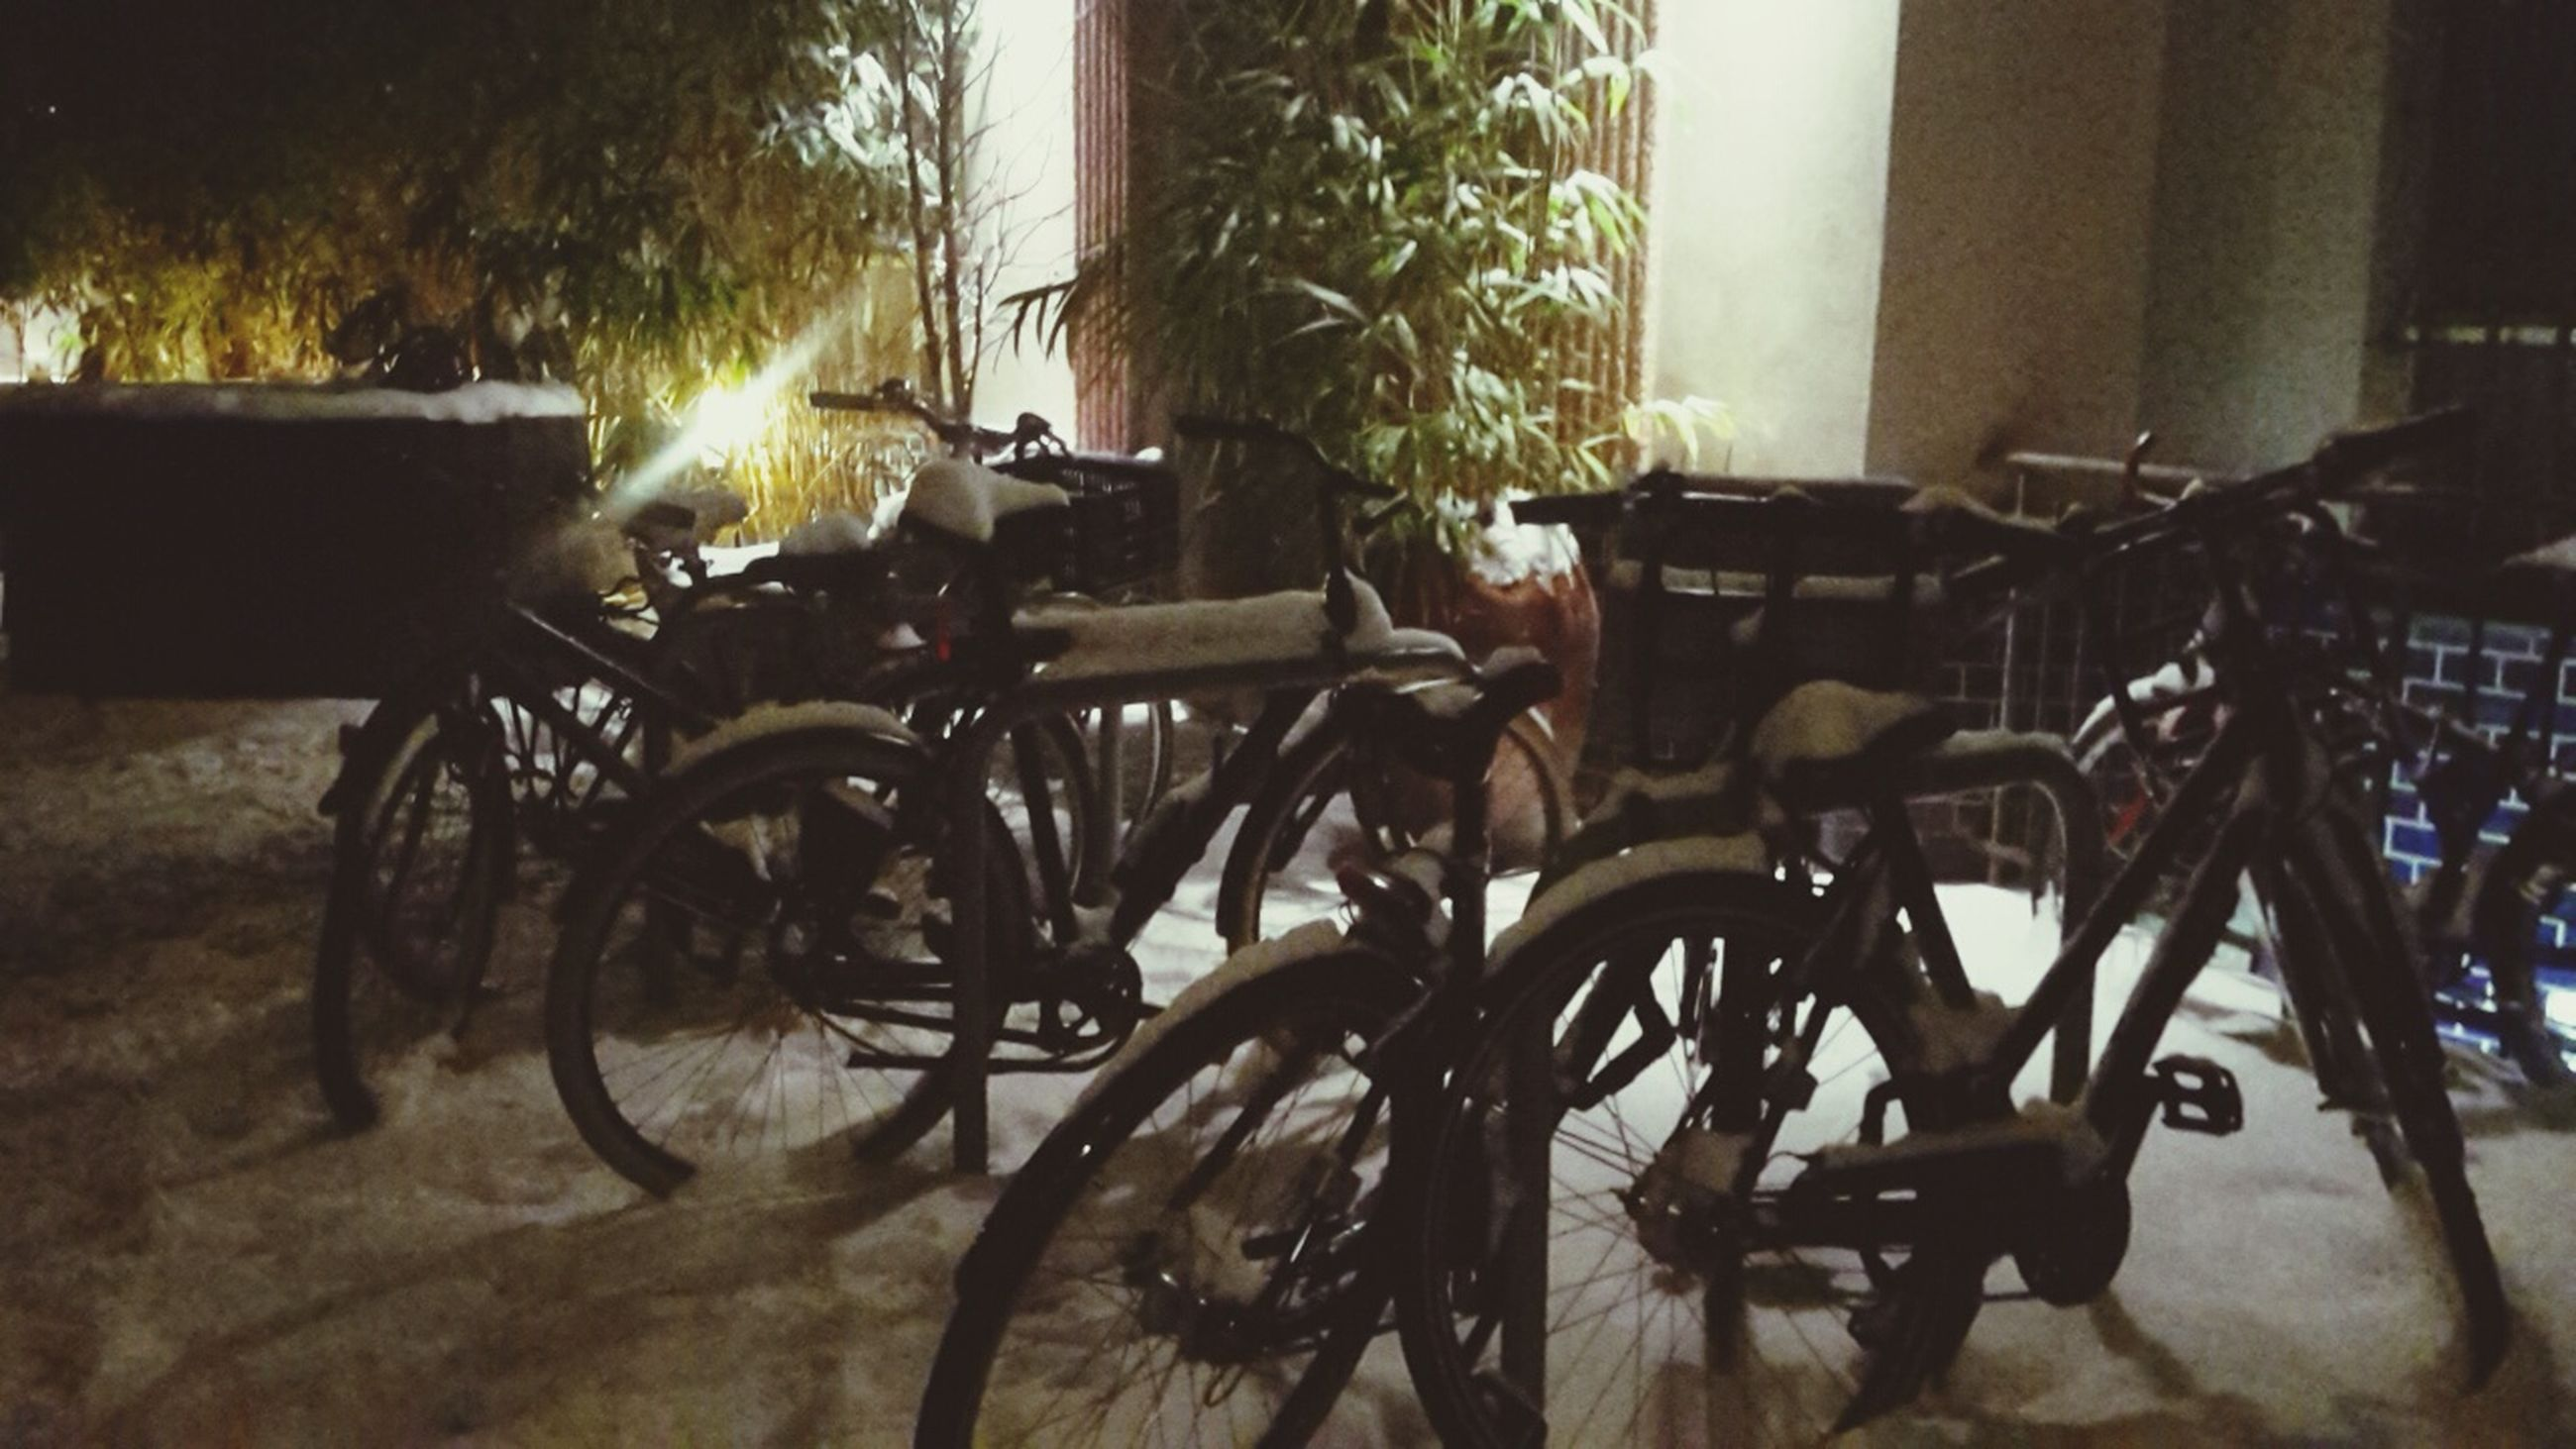 bicycle, land vehicle, mode of transport, transportation, stationary, parked, parking, tree, sunlight, built structure, shadow, architecture, absence, day, outdoors, no people, building exterior, chair, house, parking lot